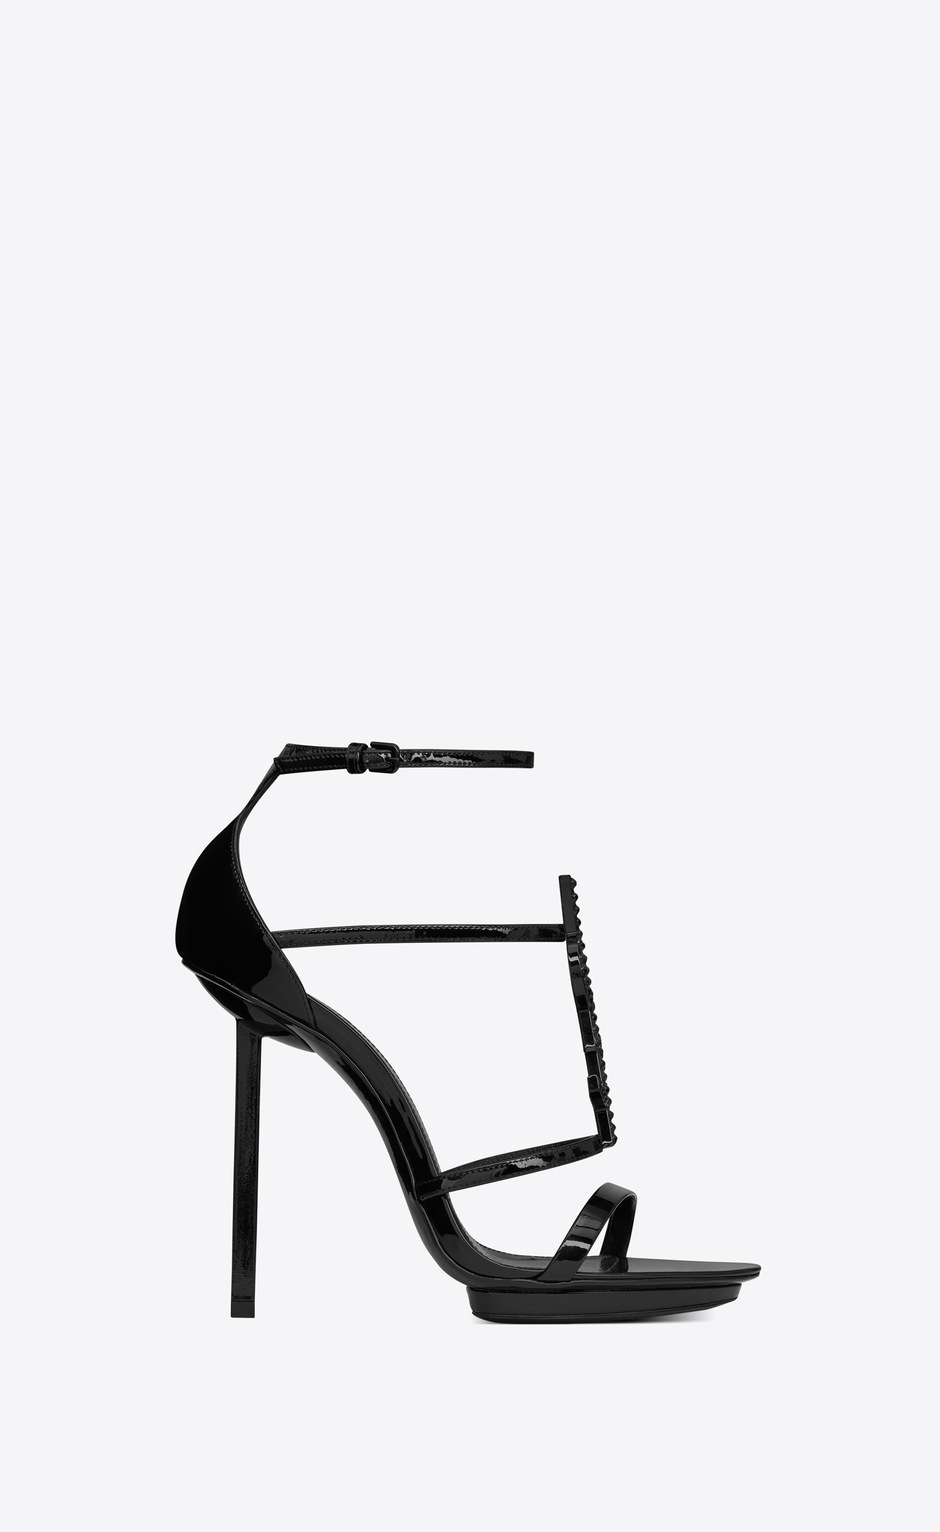 유럽직배송 입생로랑 SAINT LAURENT CASSANDRA platform sandals in patent leather with black logo and crystals 6215350NPVV1000